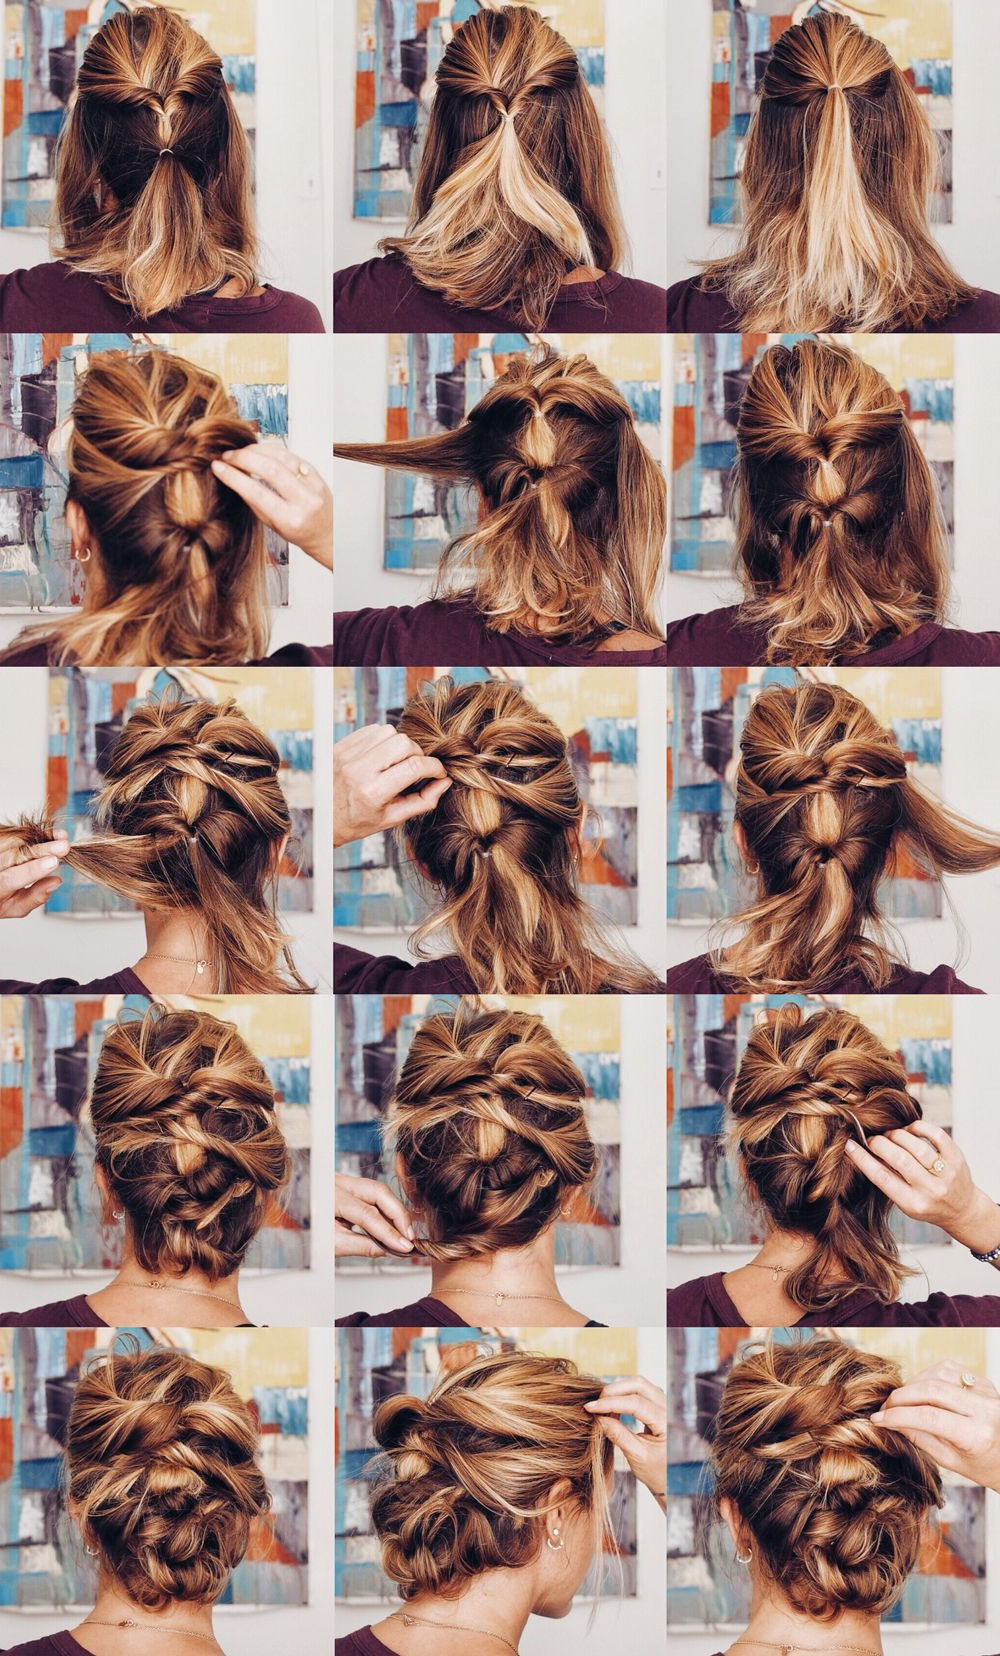 Hairspiration (View 5 of 20)